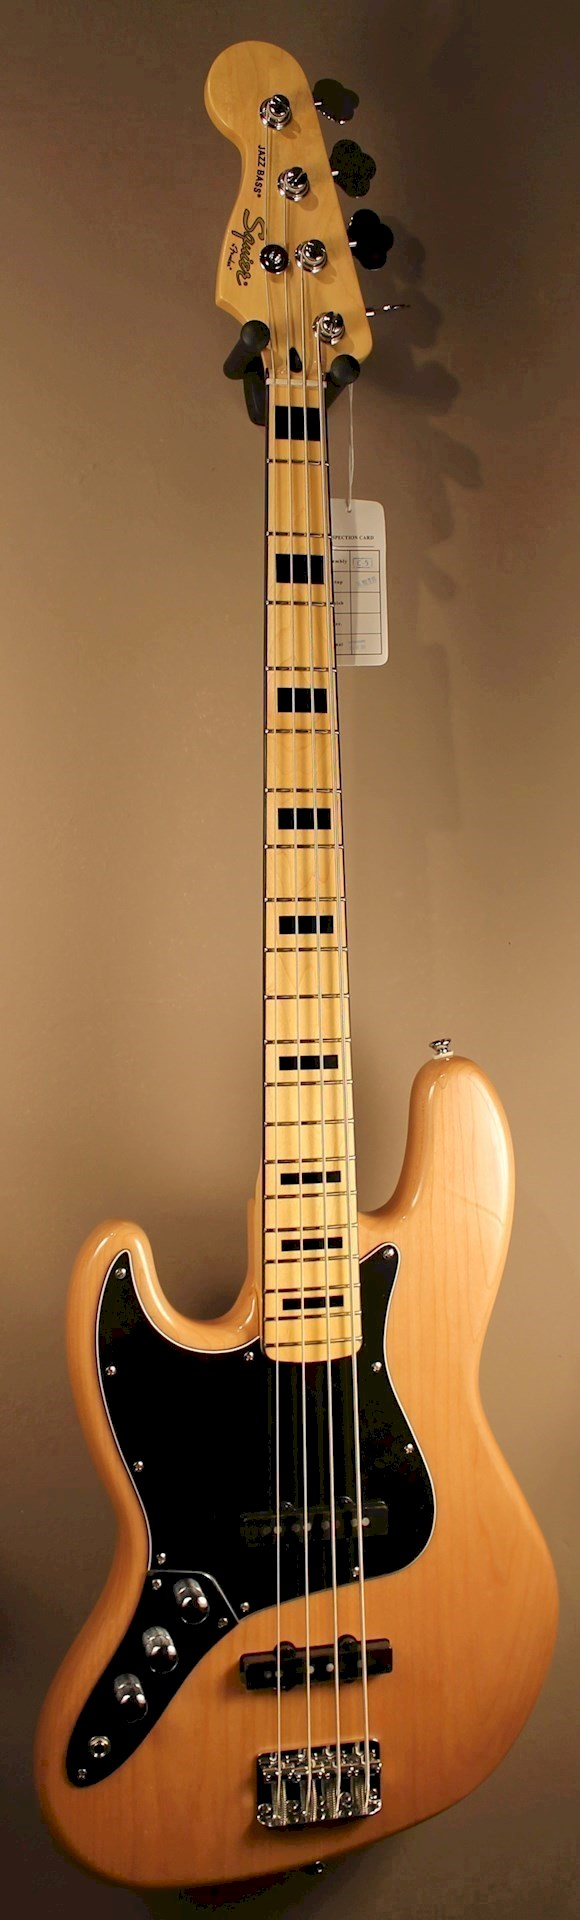 squier vintage modified 39 70s jazz bass lh natural sold leftyguitars. Black Bedroom Furniture Sets. Home Design Ideas